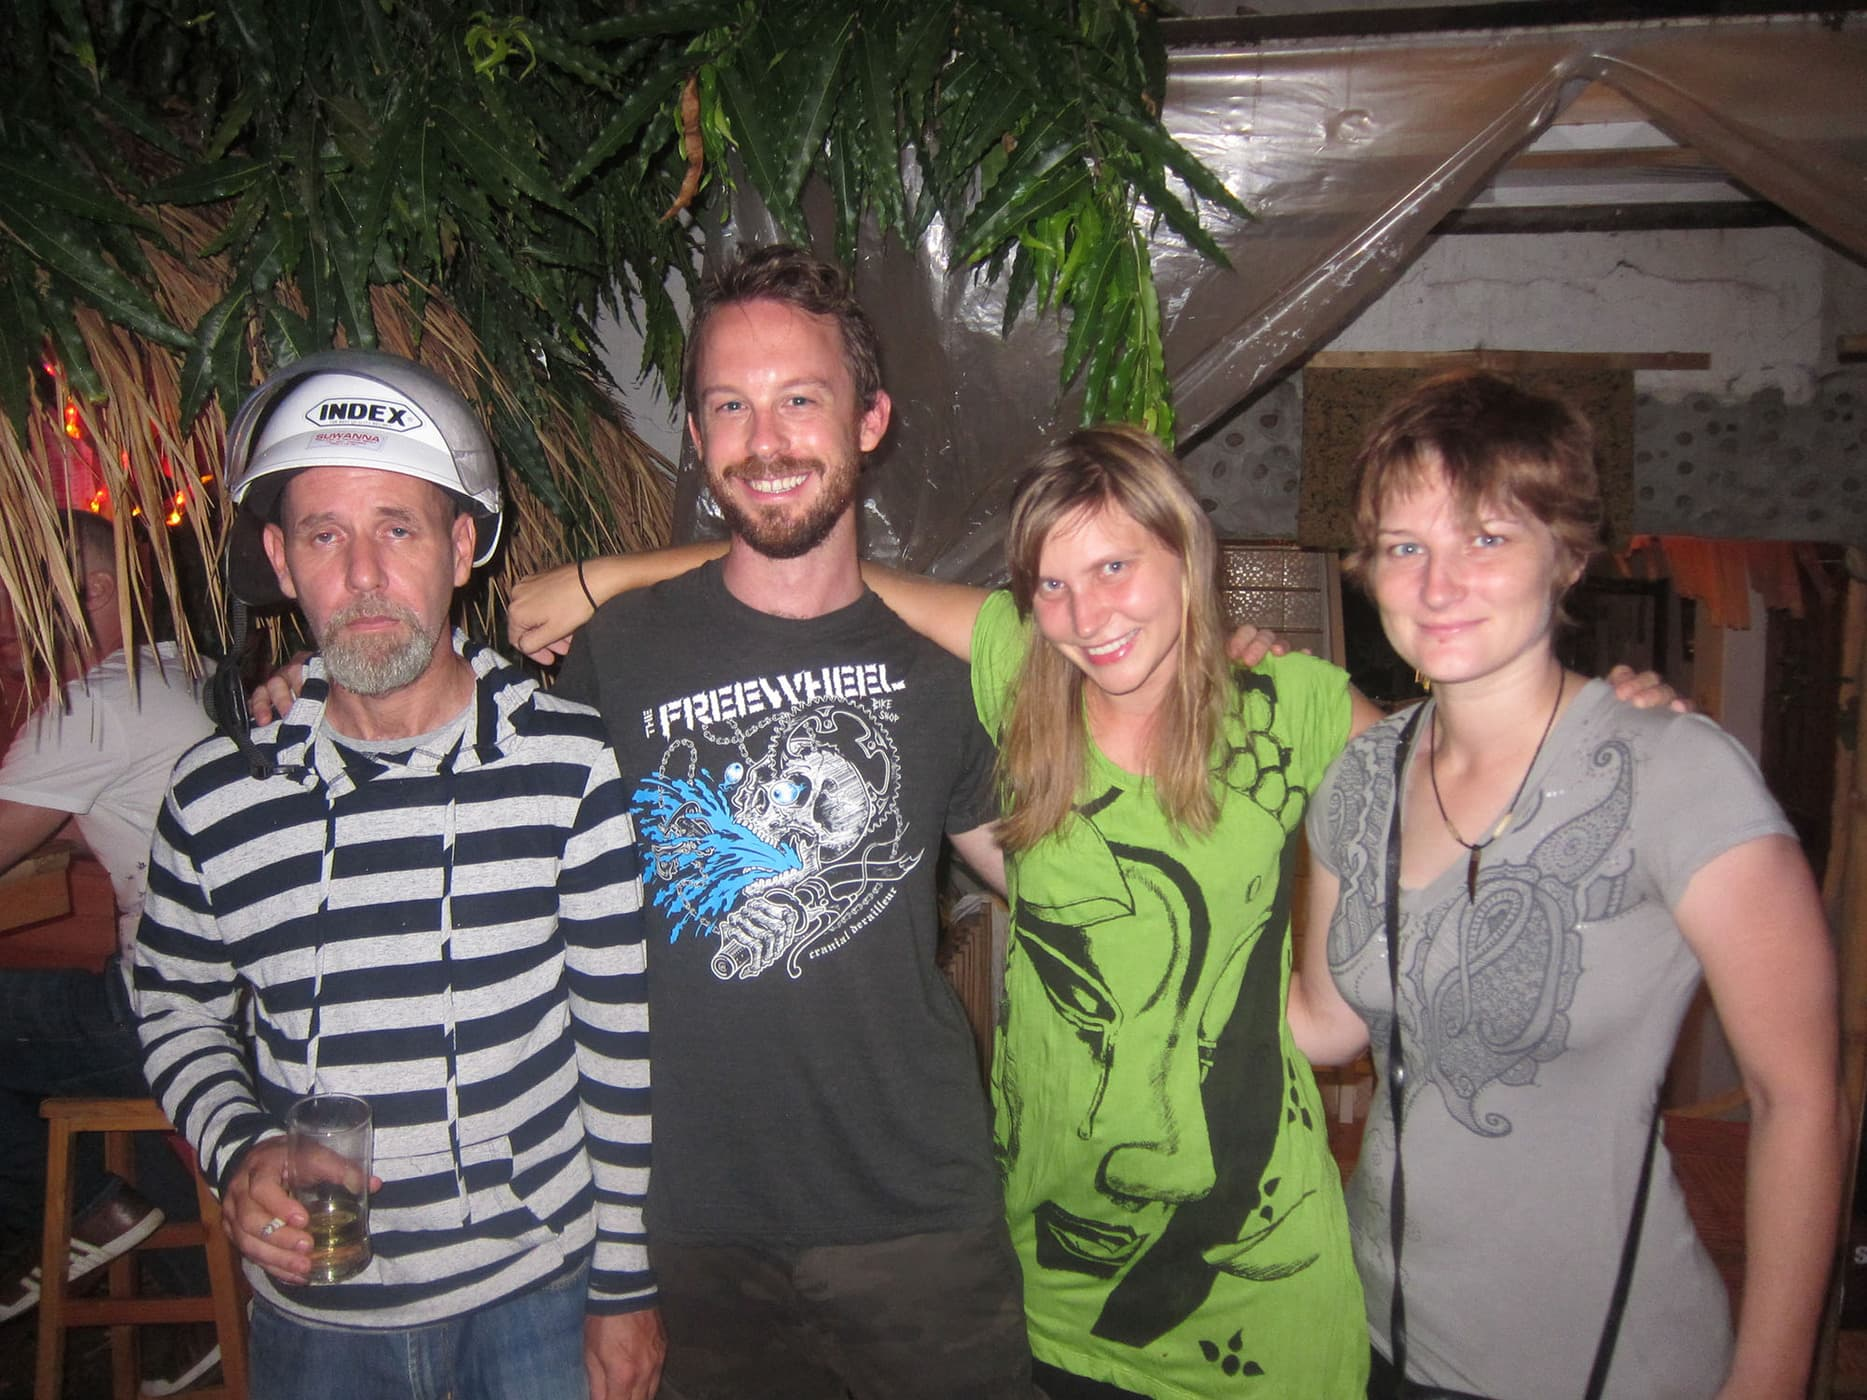 Celebrating one year of traveling in Chiang Mai, Thailand.